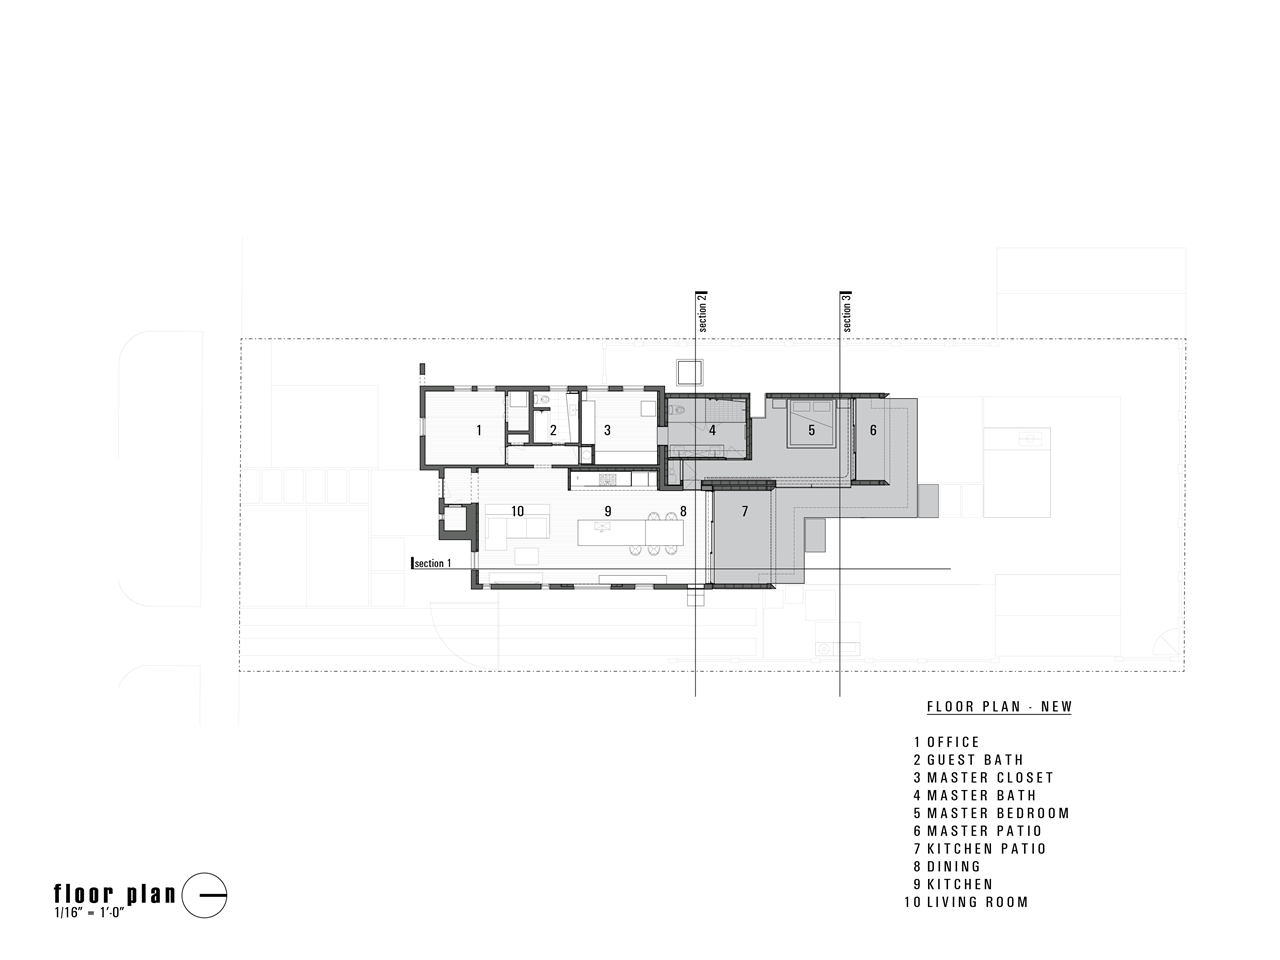 Small modern home renovation floor plan by Chen + Suchart Studio